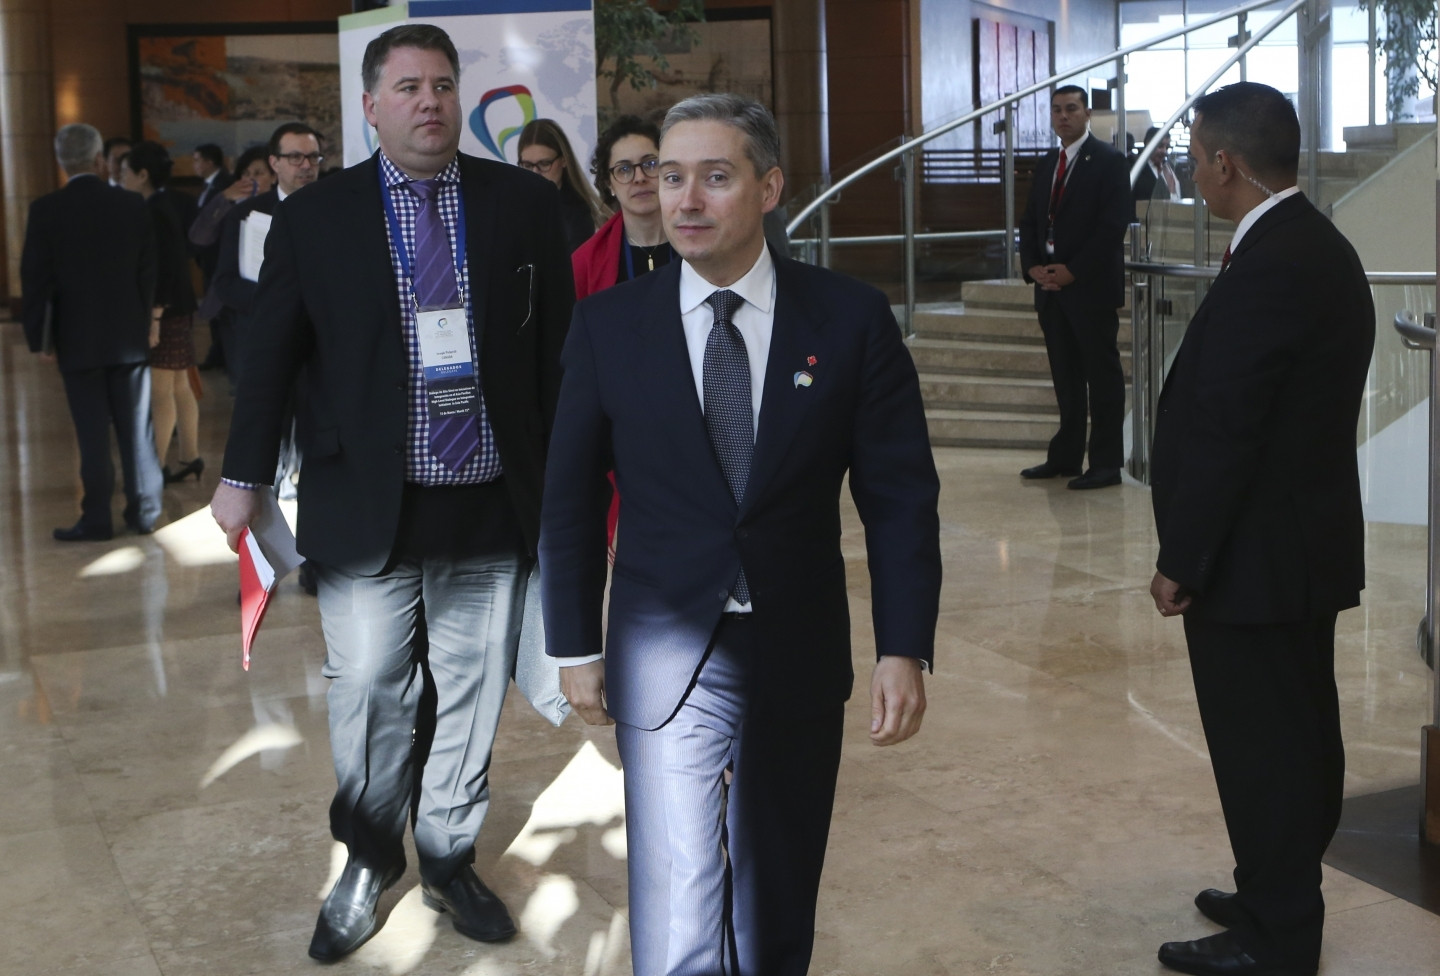 Francois-Philippe Champagne walks prior a meeting of the Trans-Pacific Partnership in Vina del Mar, Chile, Wednesday, March 15, 2017. (AP Photo/Esteban Felix)